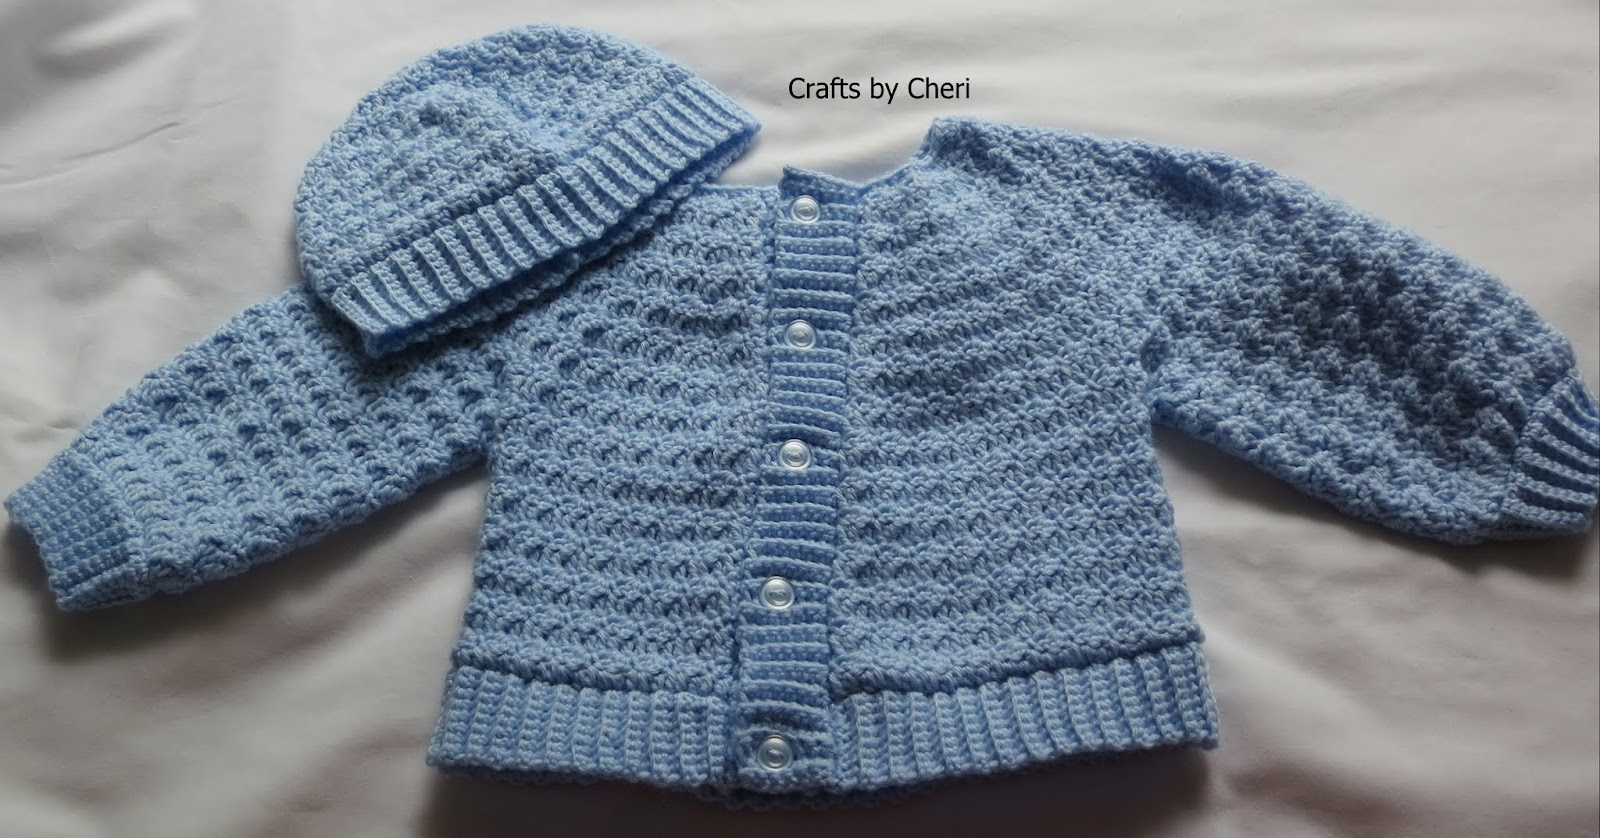 Free Crochet Patterns For Baby Boy Beanies : Cheris Crochet Baby or reborn baby doll clothing or ...